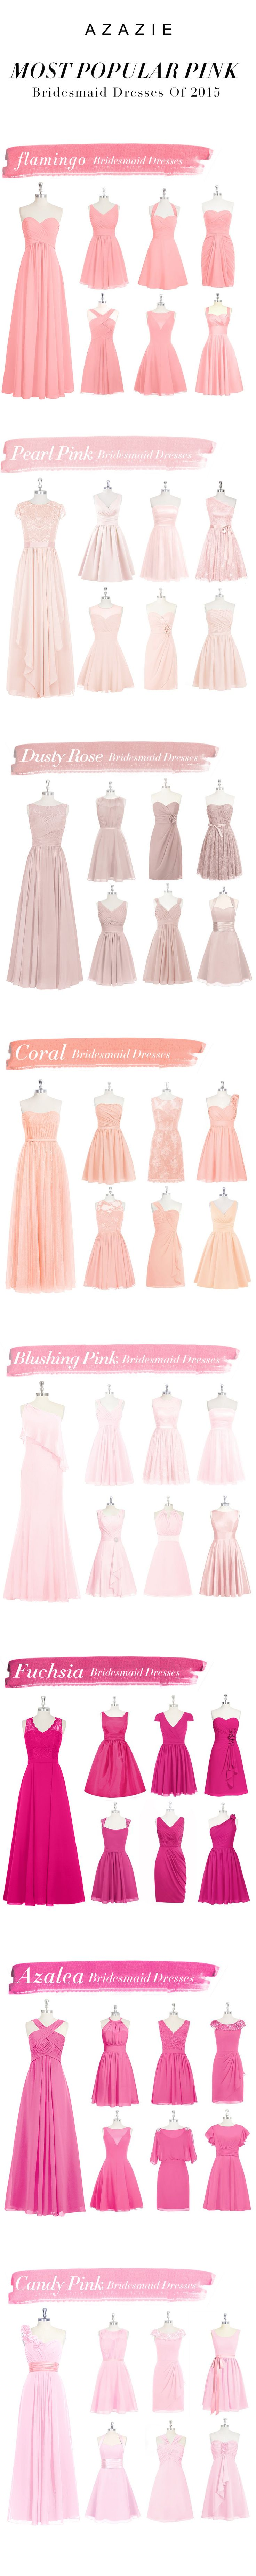 Vestidos em tons de  Rosas  Modesto Bridemaids - Rosa claro -  Pink Bridesmaid Dresses For 2015 By Azazie